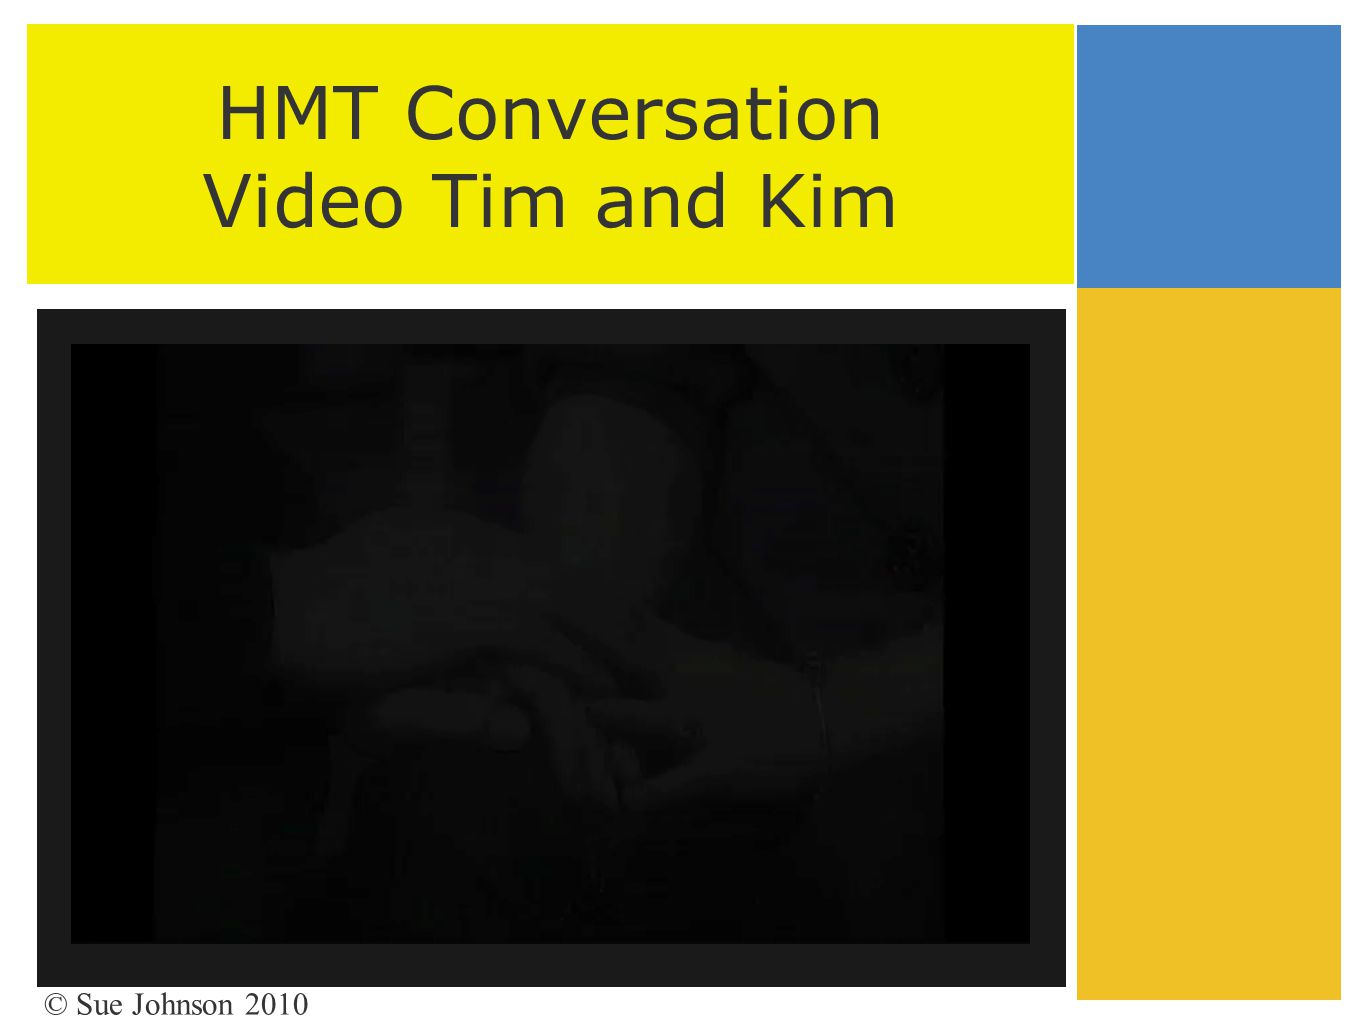 HMT Conversation Video Tim and Kim